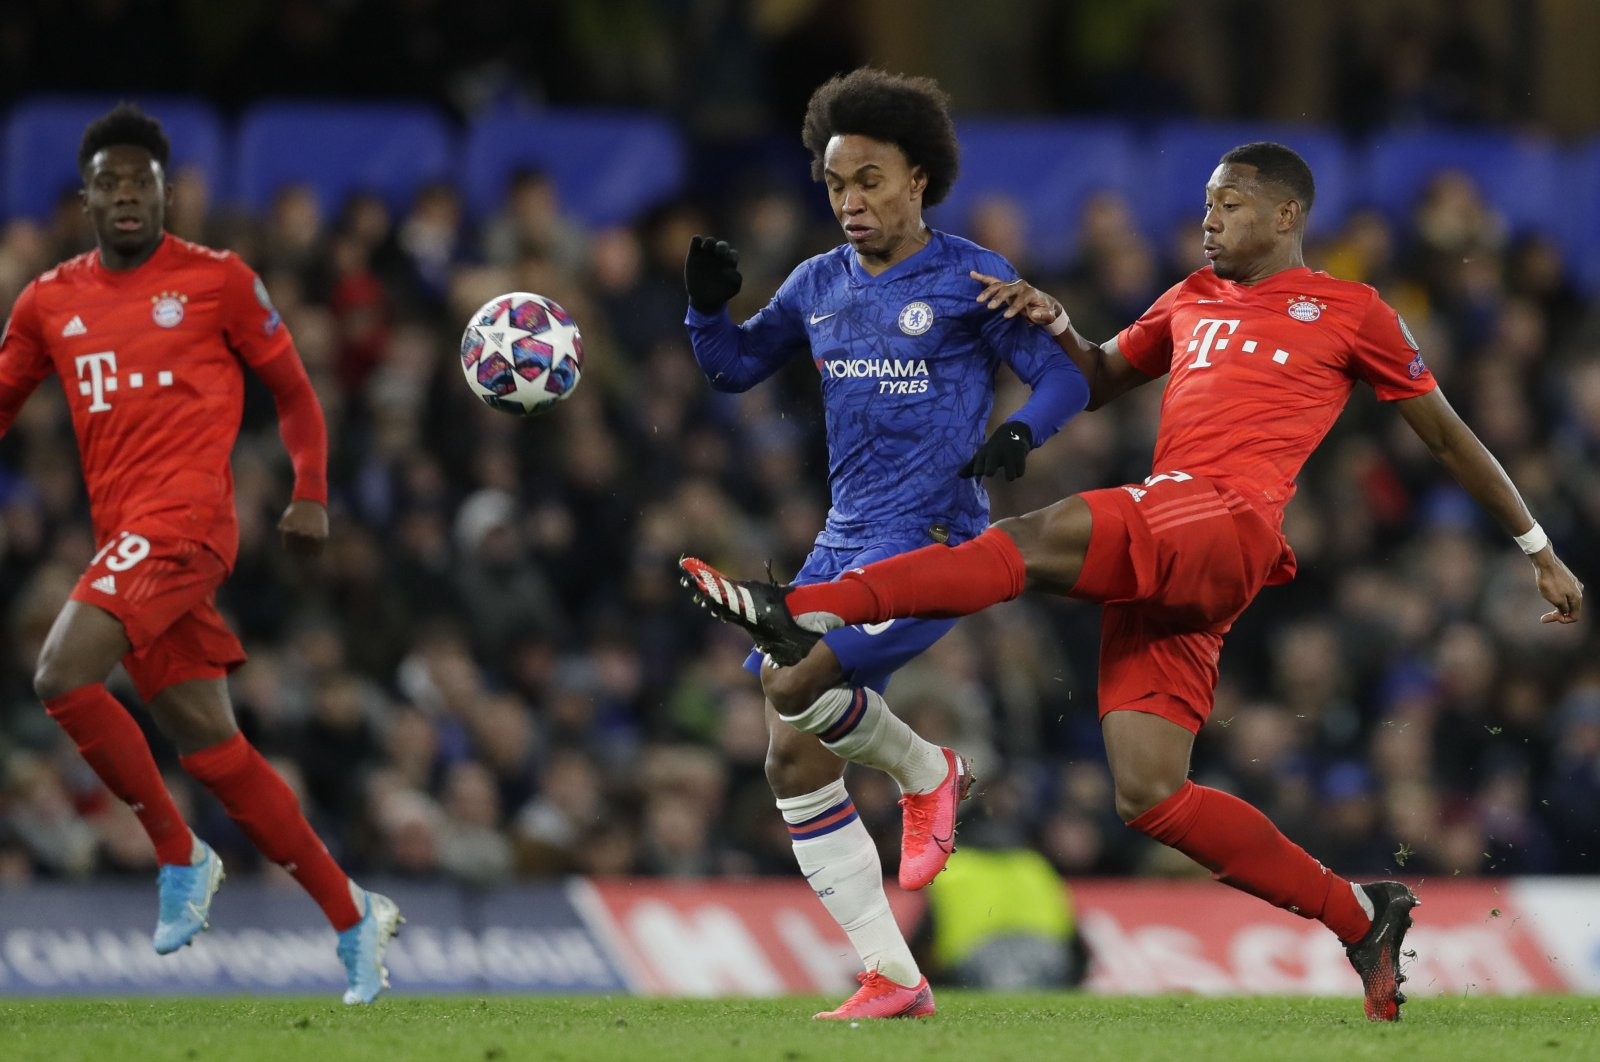 Bayern Munich's David Alaba challenges Chelsea's Willian during a Champions League match in London, England, Feb. 25, 2020. (AP Photo)